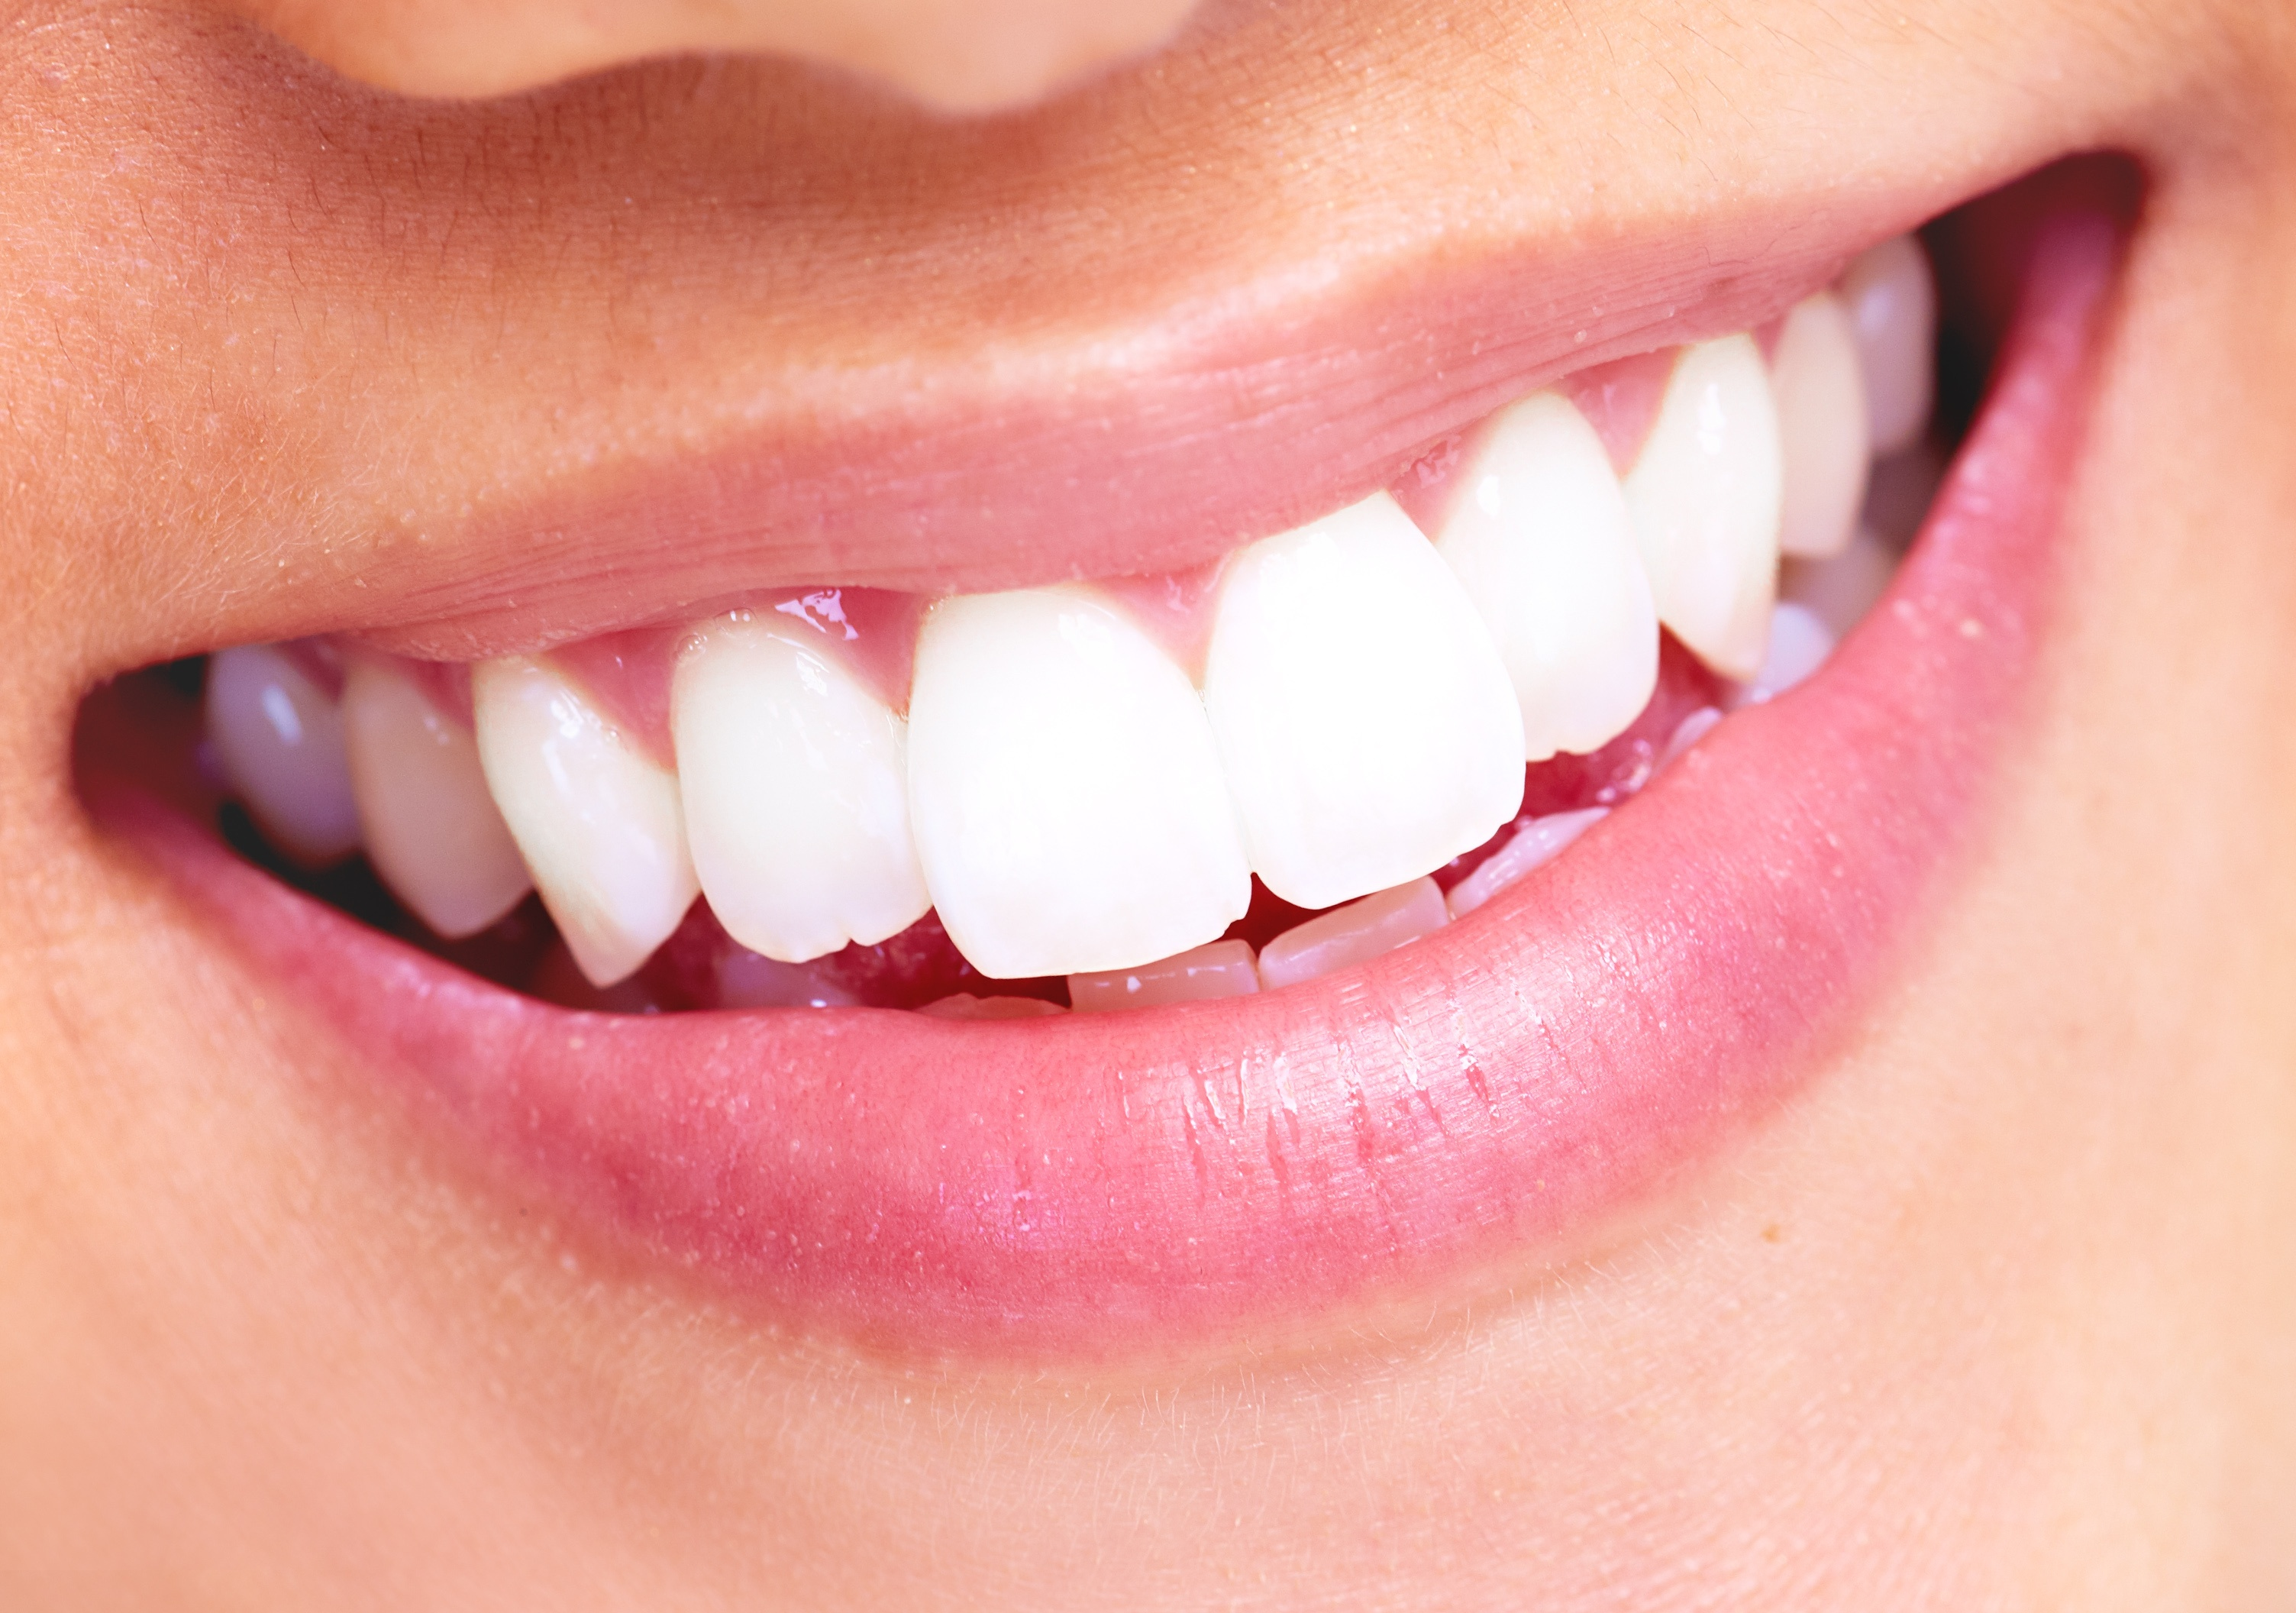 Teeth Cleaning in Larchmont